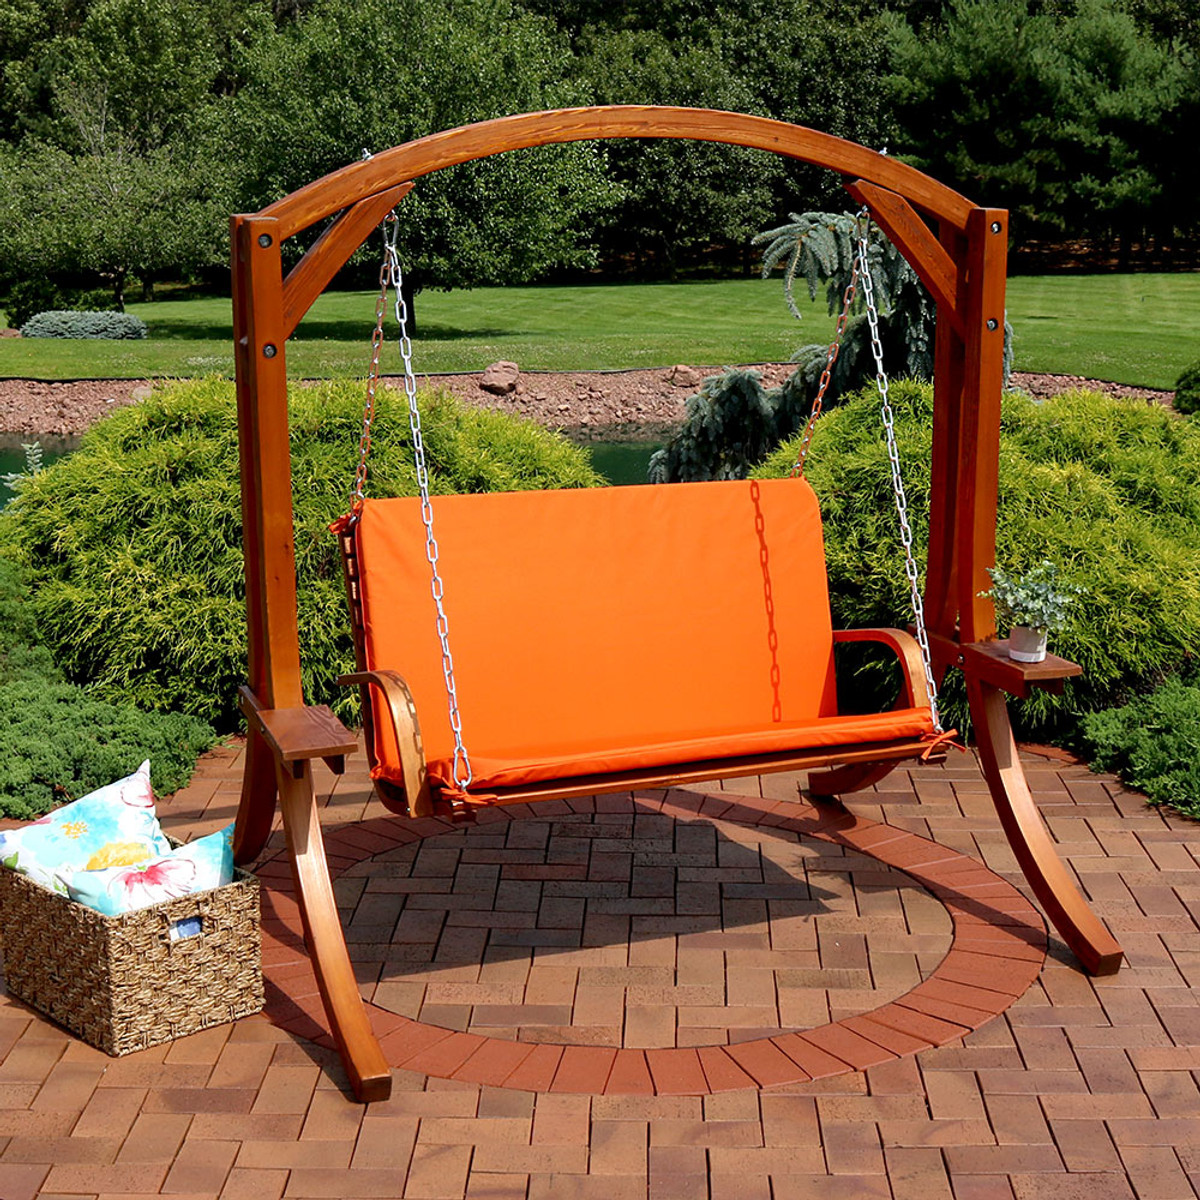 s idea living moon regarding lovely cypress swing deck patio house room chair swings your fabulous chairs porch